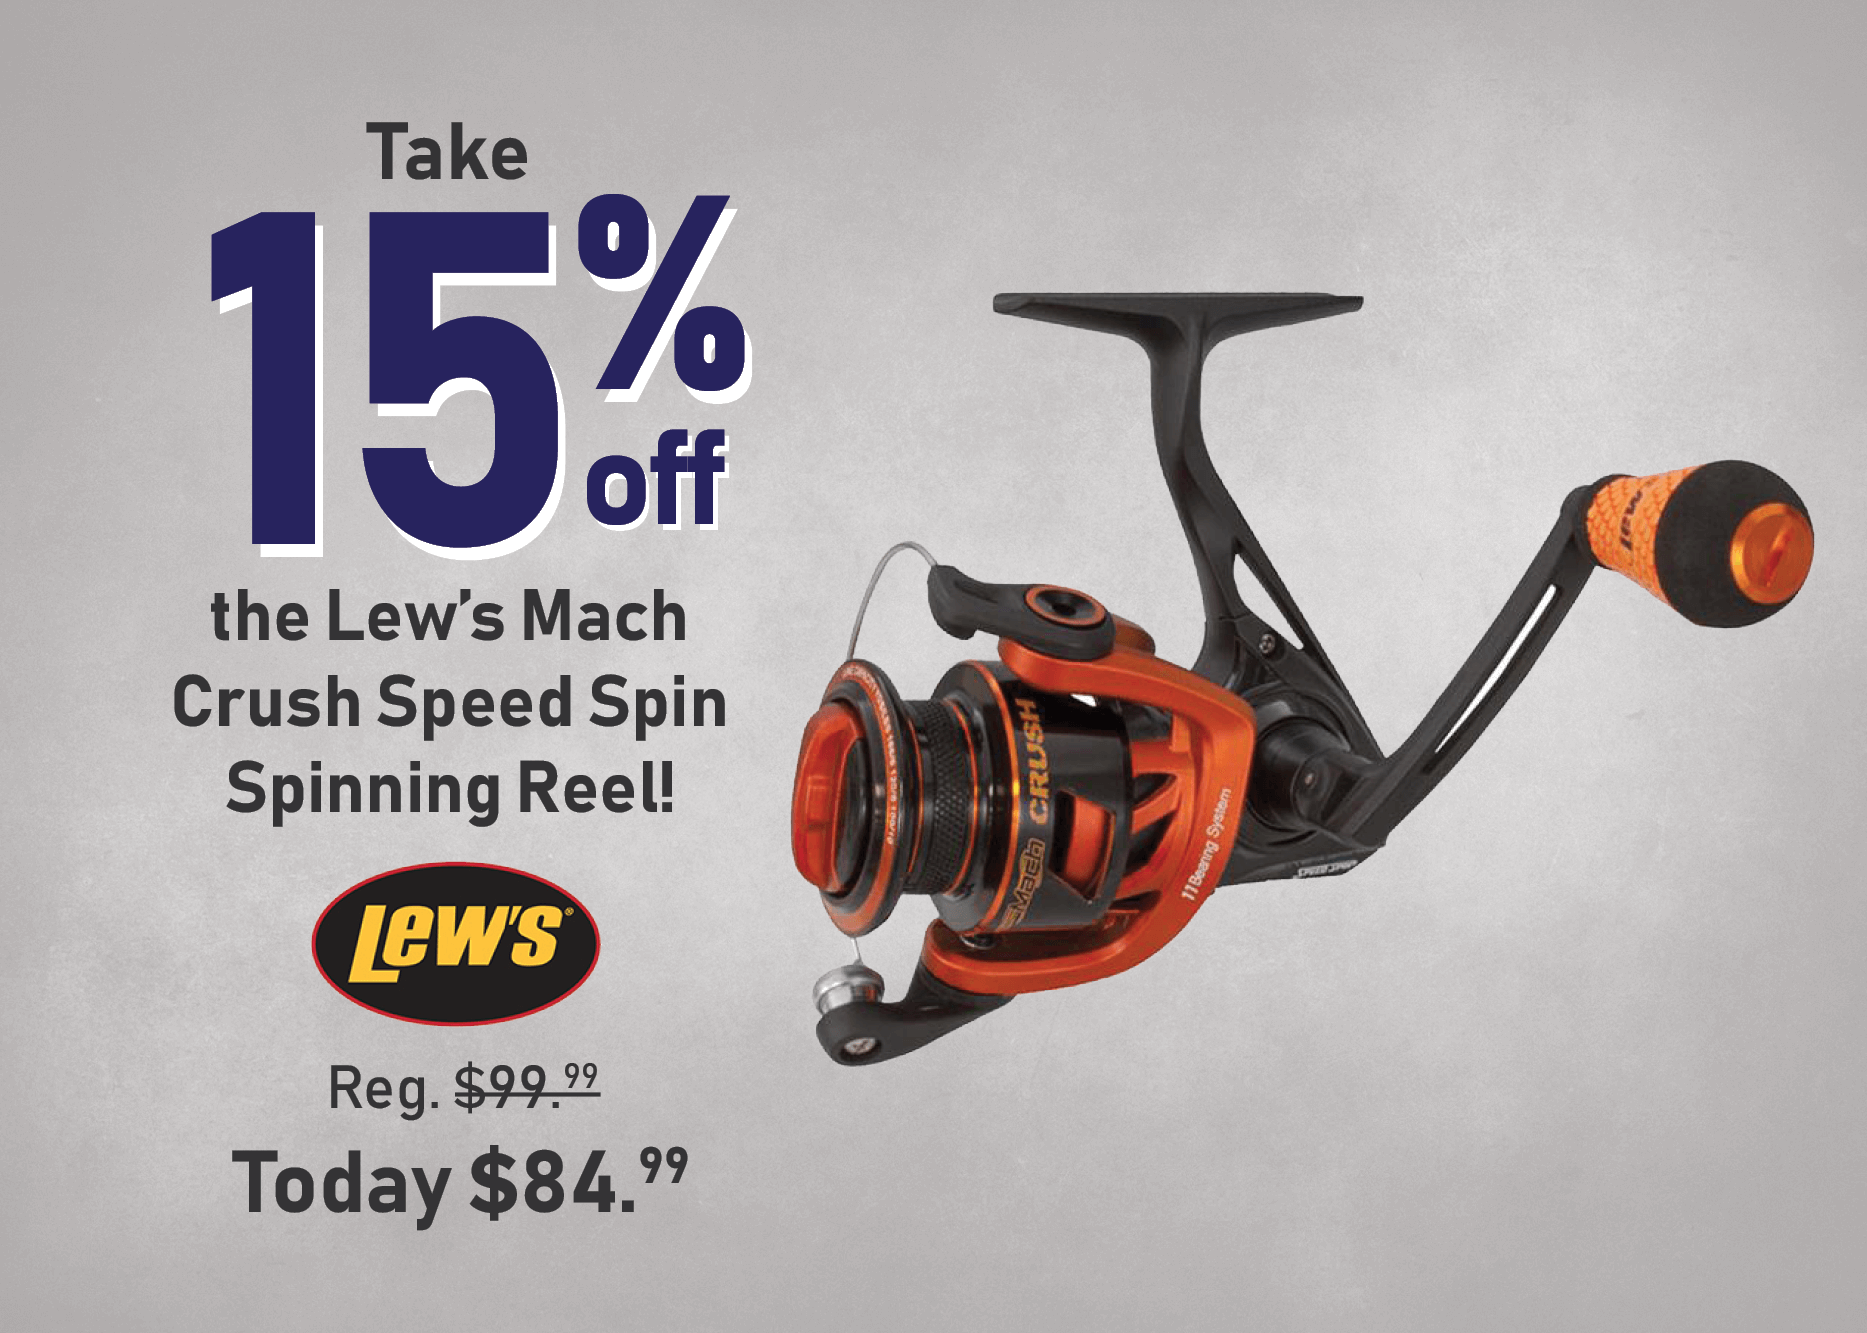 Take 15% off the Lew's Mach Crush Speed Spin Spinning Reel